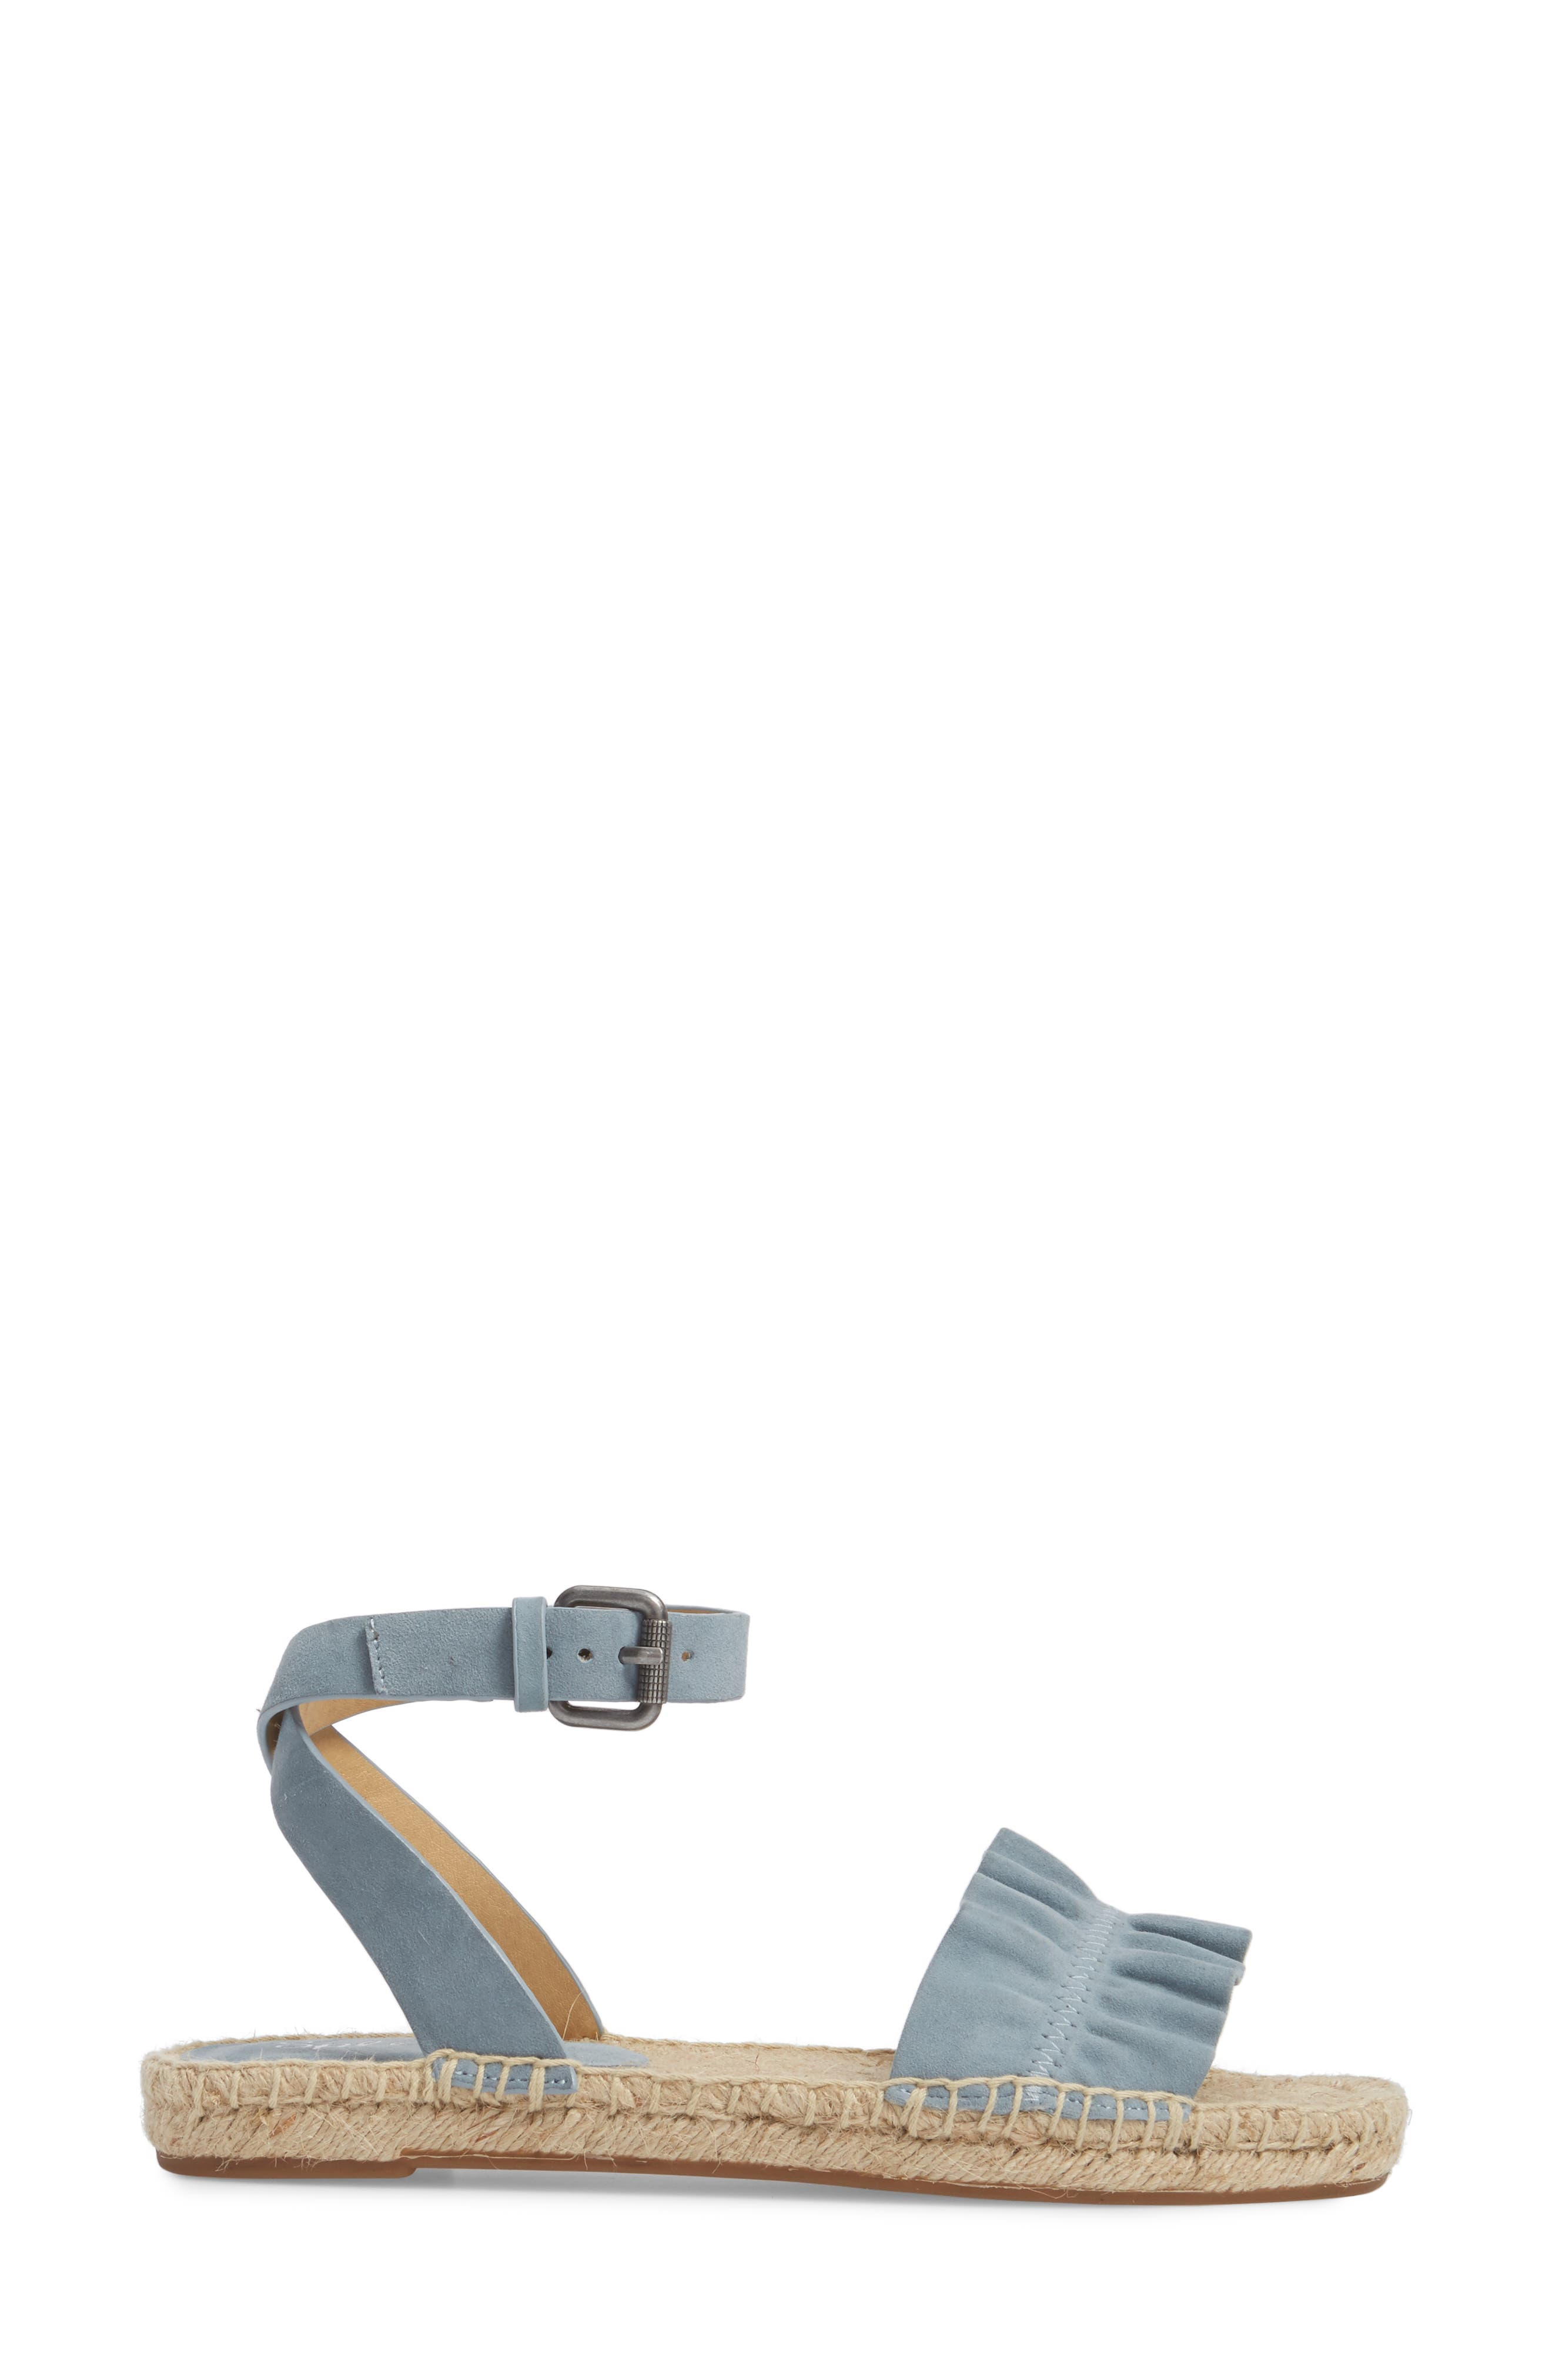 Becca Ruffled Espadrille Sandal,                             Alternate thumbnail 3, color,                             Shadow Blue Suede